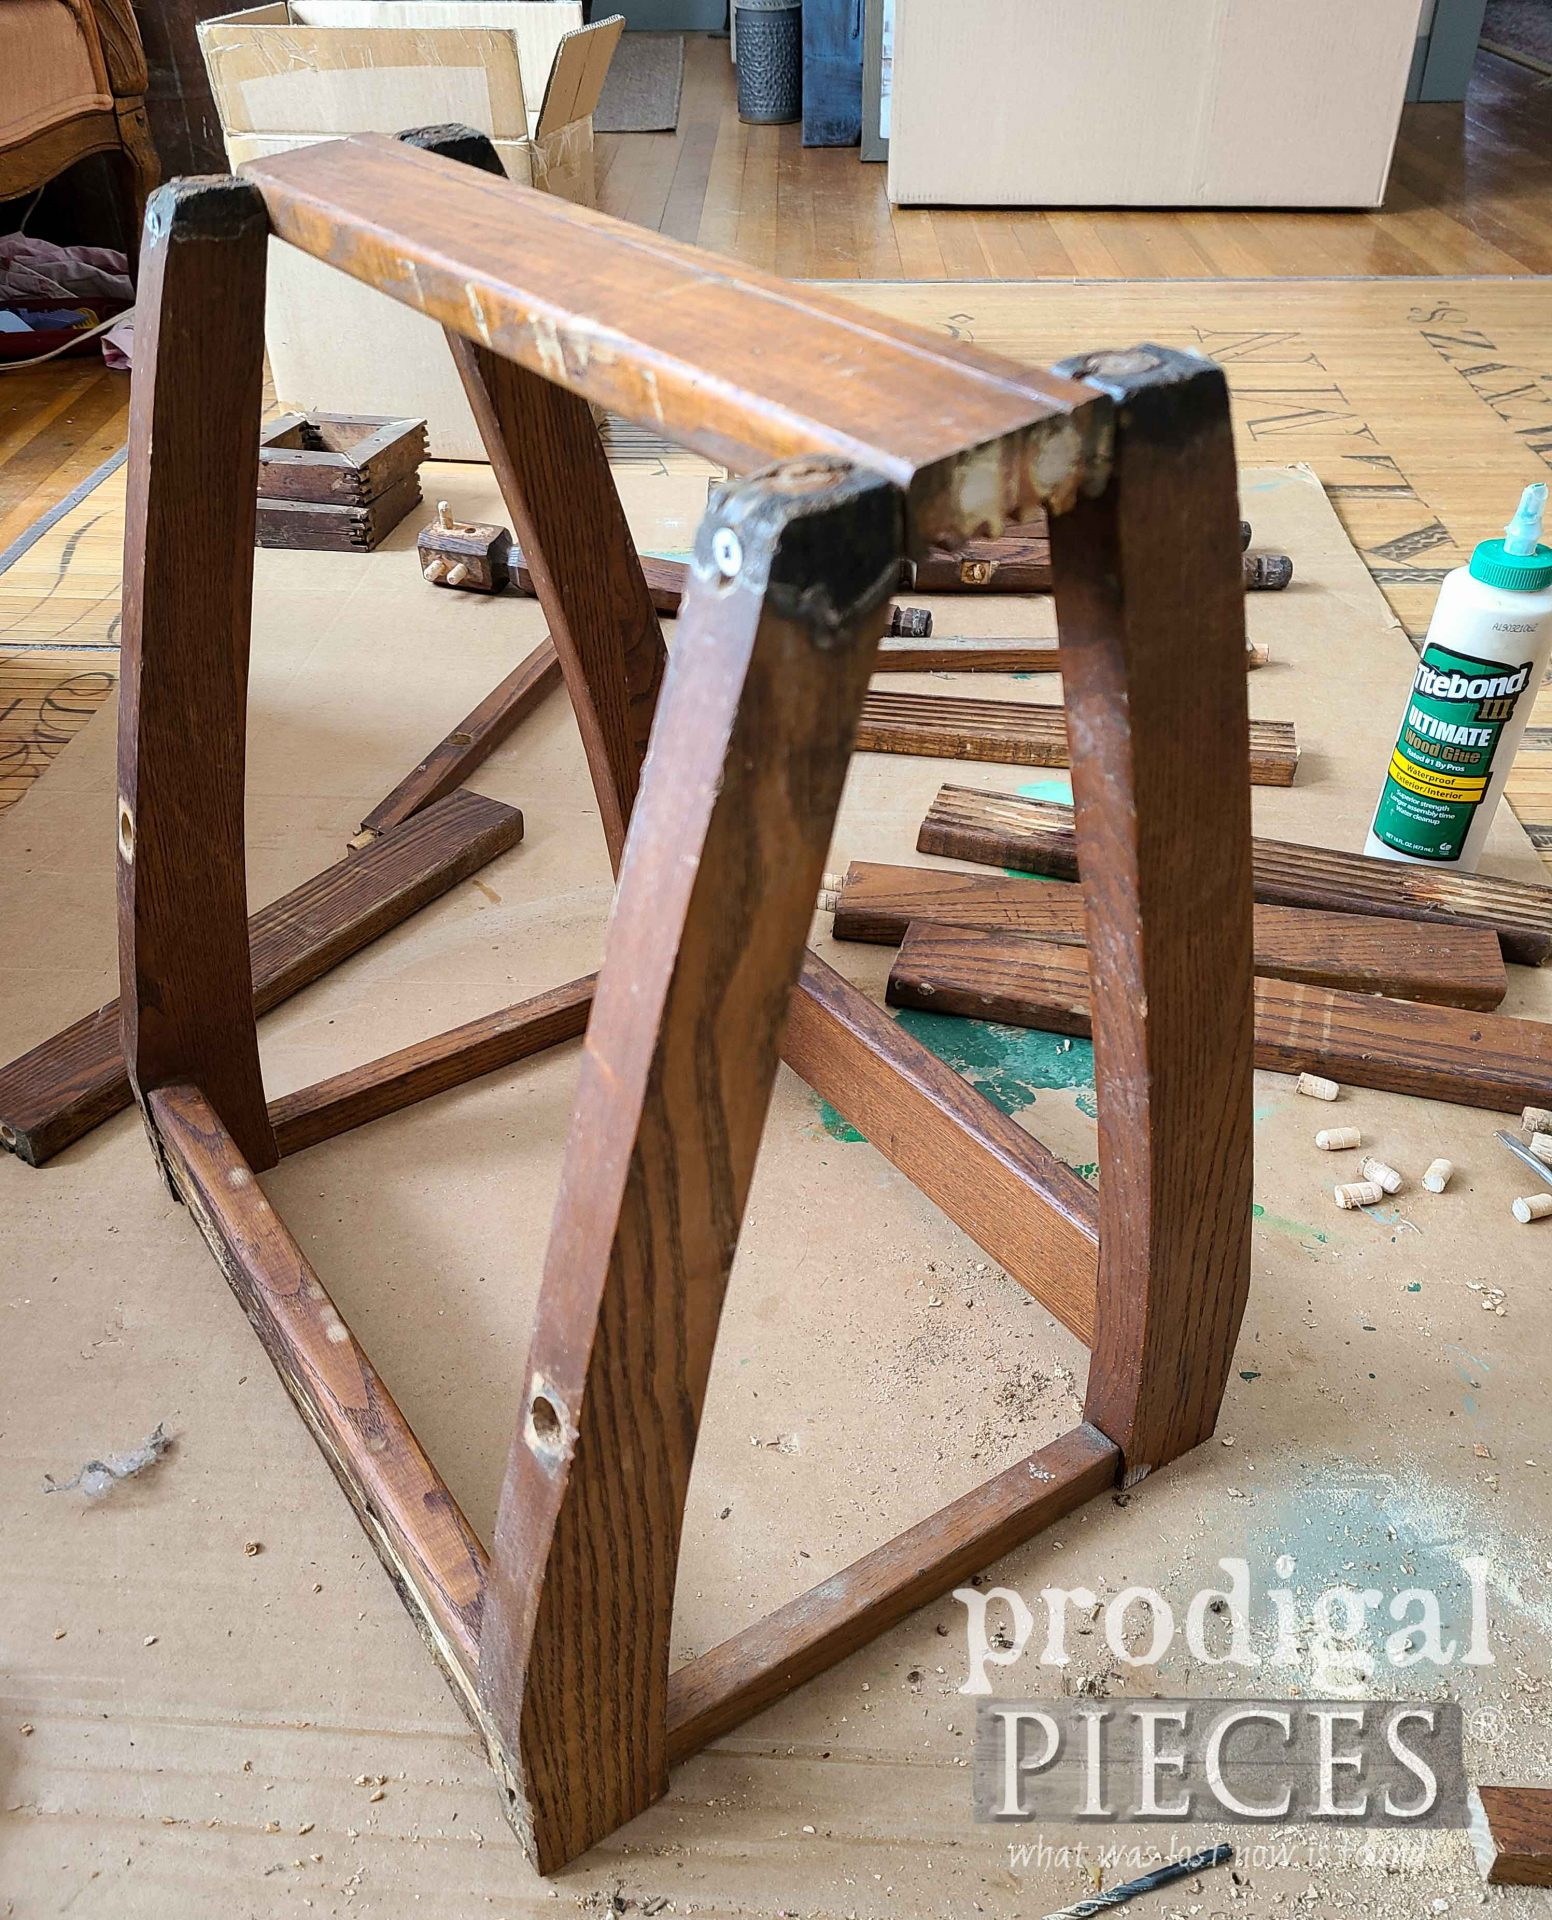 DIY Cat Cave Frame from Upcycled Chair Parts | prodigalpieces.com